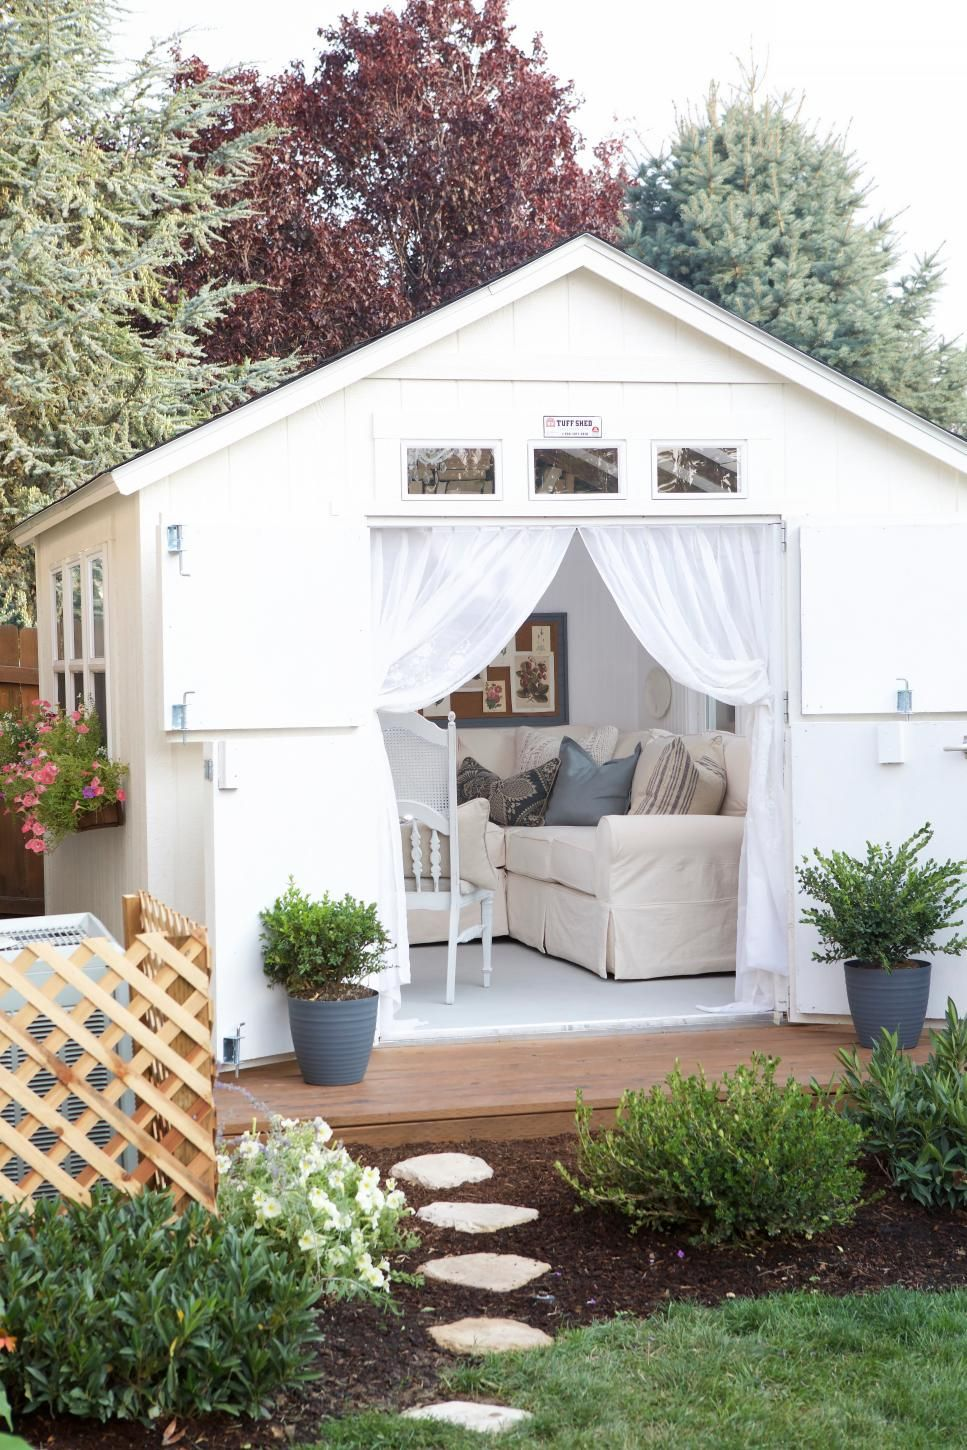 Inspiring Ideas for Shed Makeovers | Pinterest | Extra rooms ...